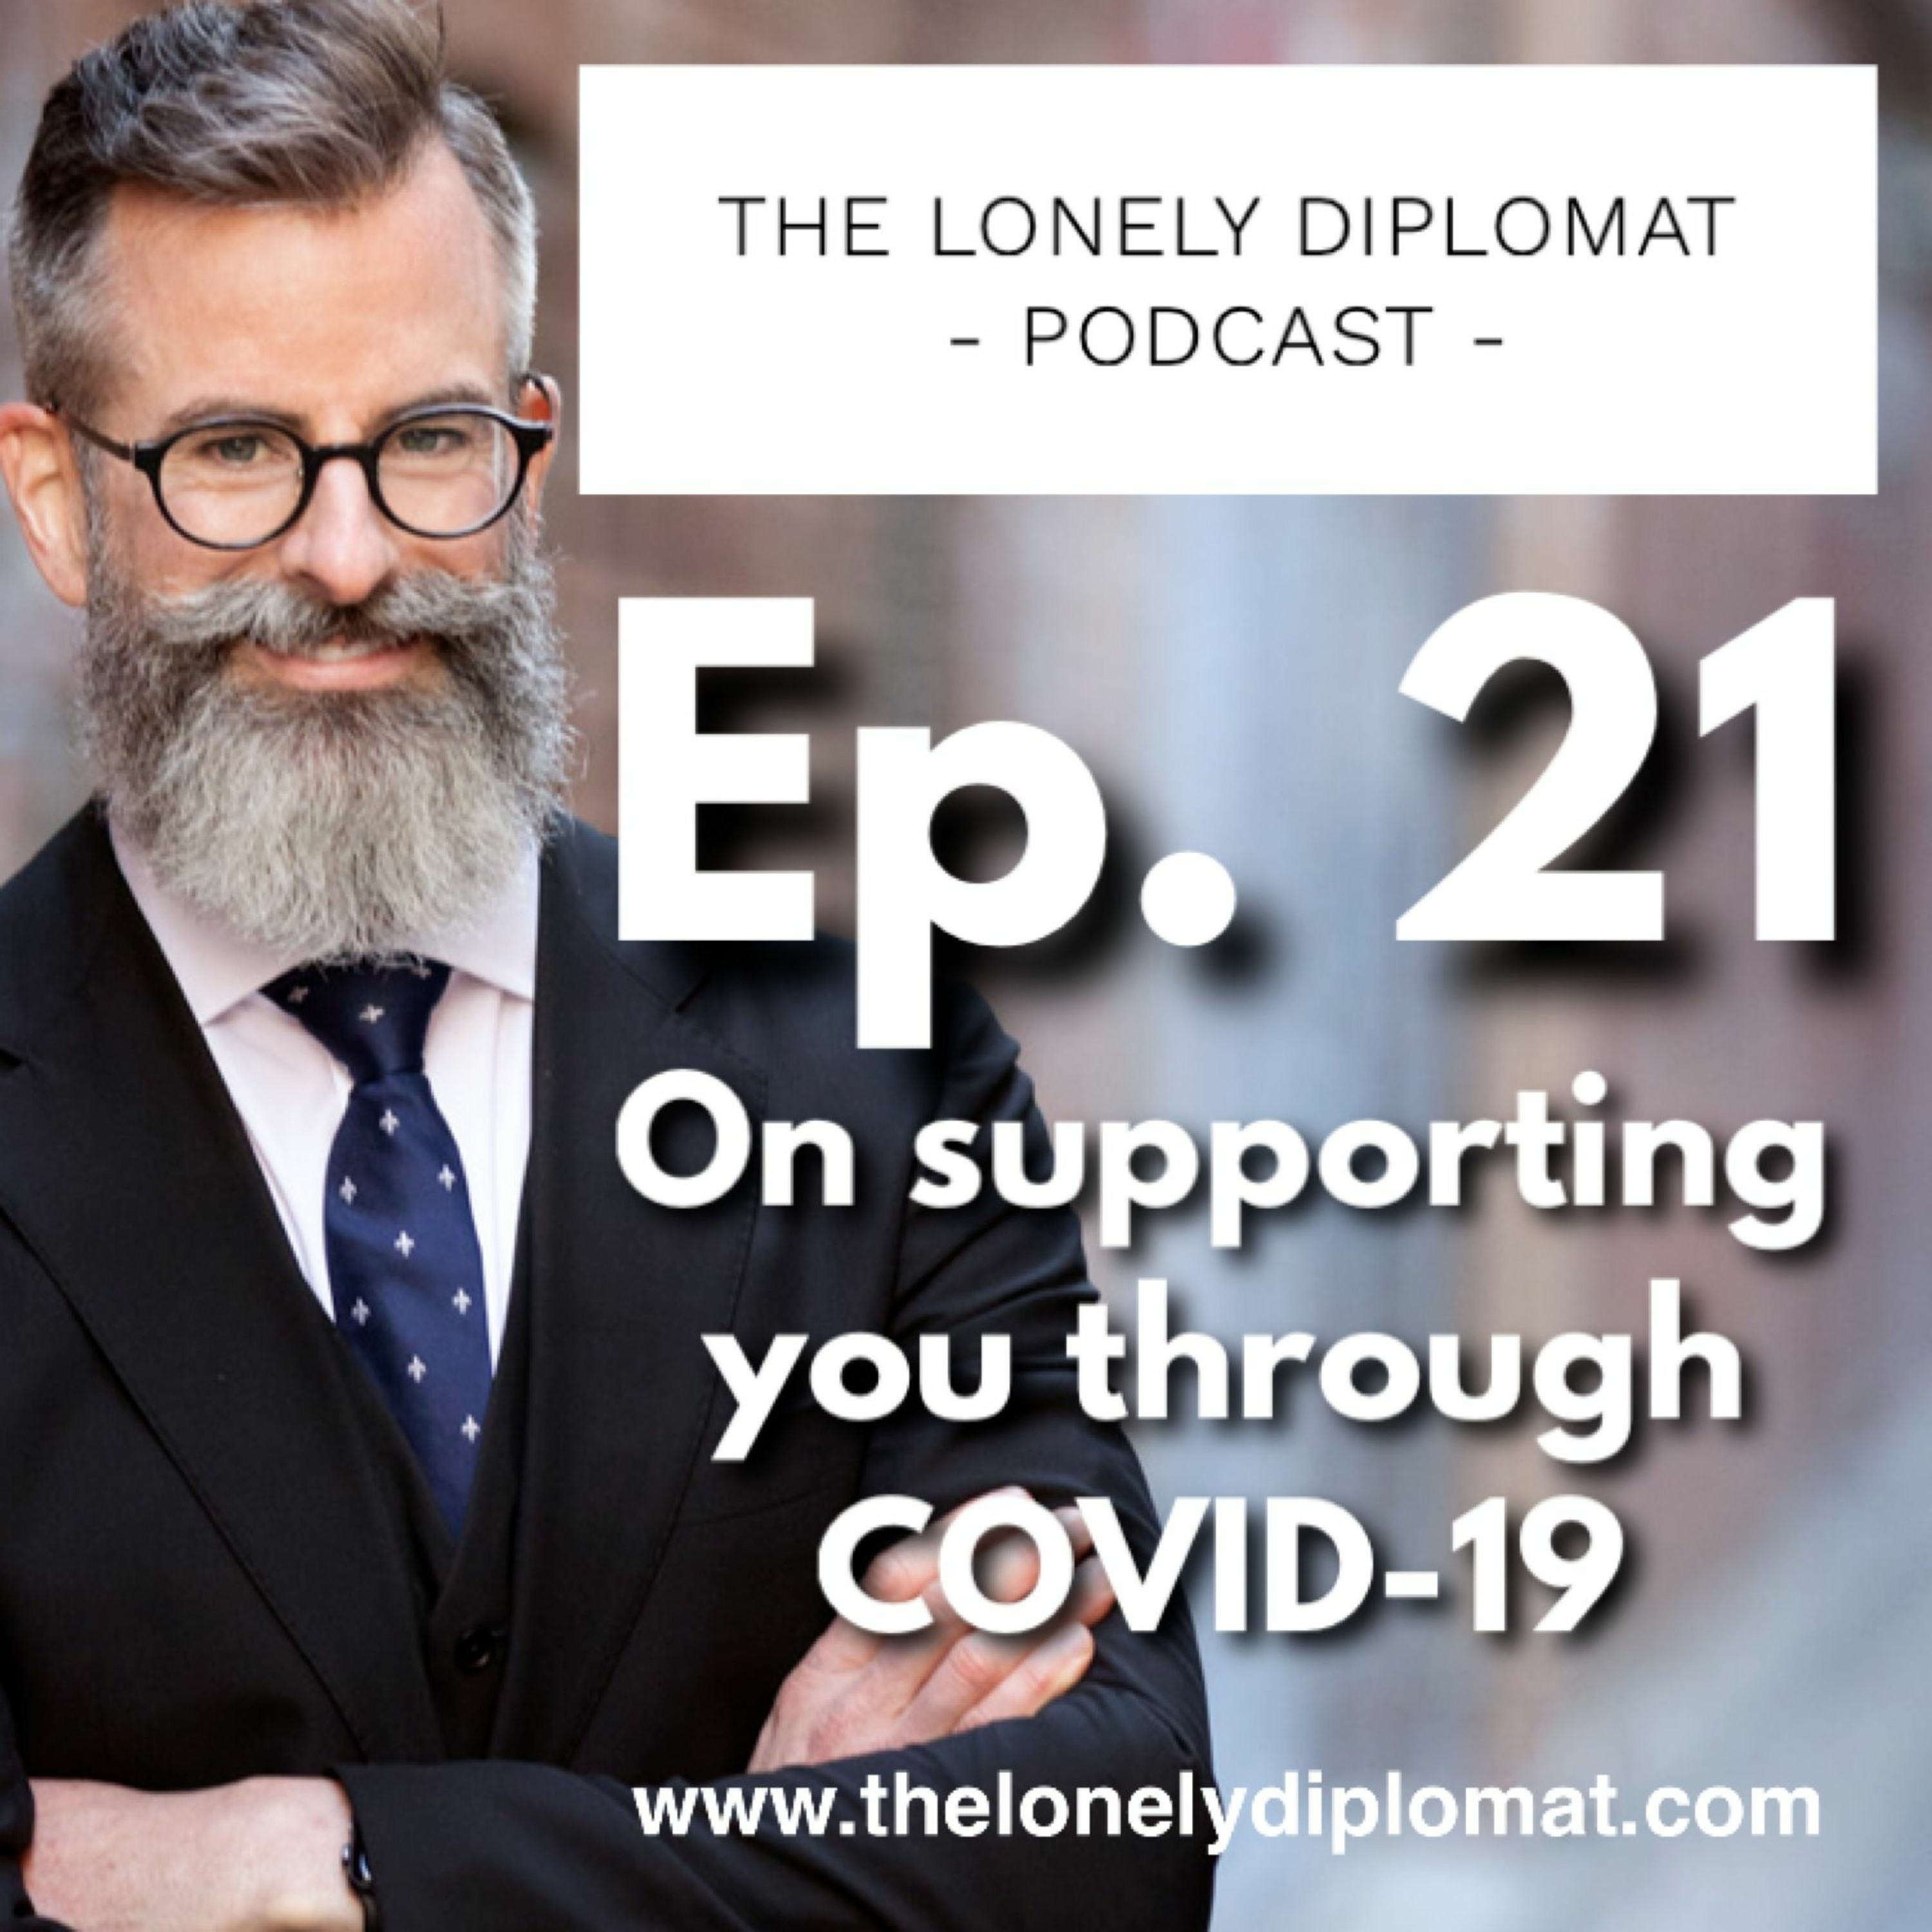 Ep. 21 - On supporting you through COVID-19